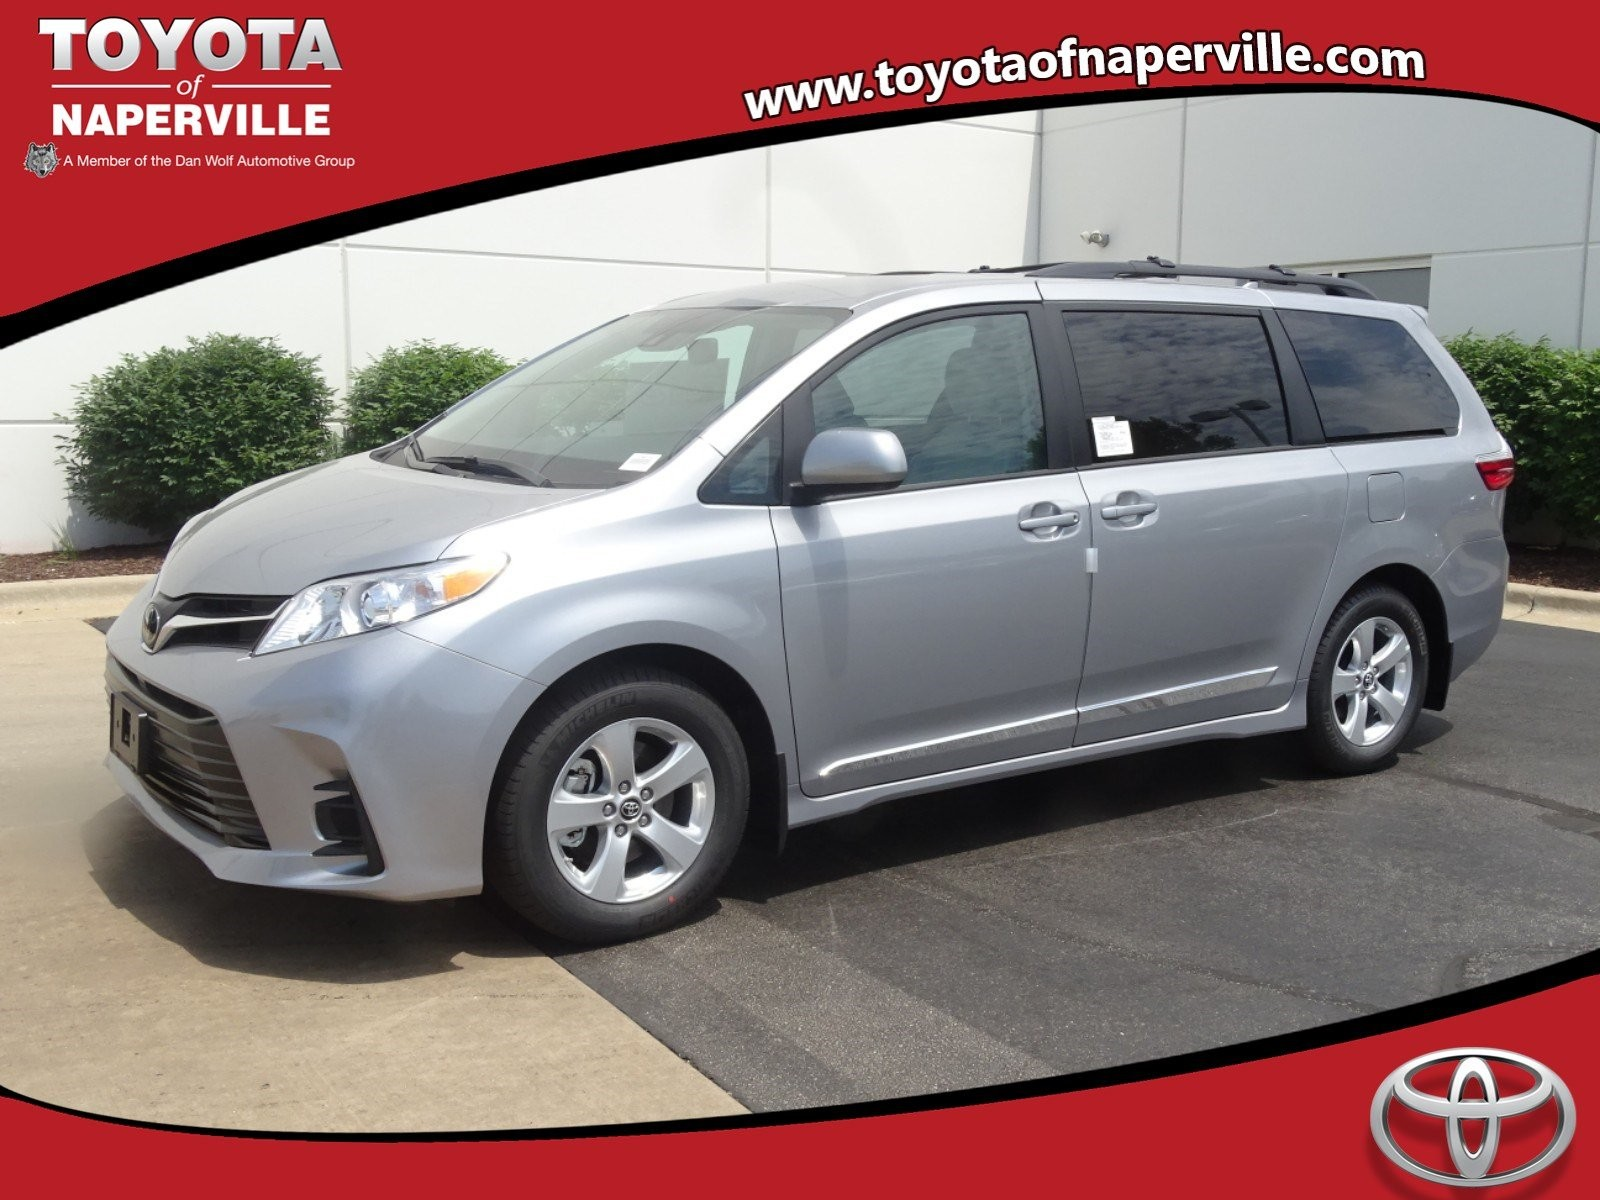 2004 toyota Sienna Parts Diagram New 2018 toyota Sienna Le 4d Passenger Van In Naperville T Of 2004 toyota Sienna Parts Diagram New 2018 toyota Sienna Le 4d Passenger Van In Naperville T